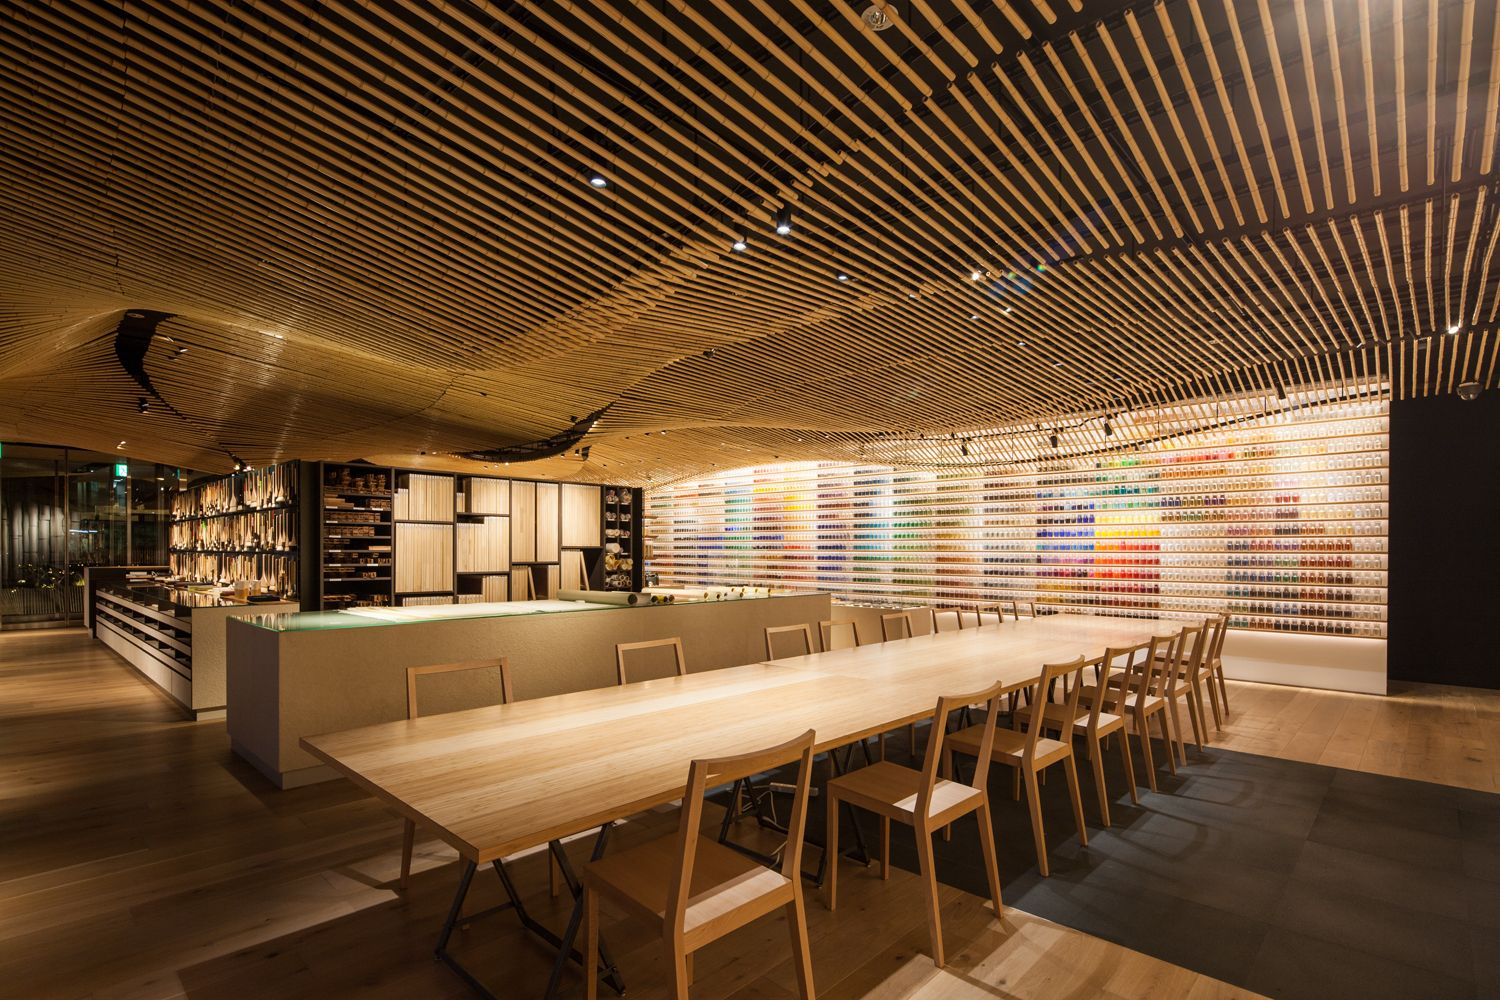 Kengo Kuma Designed A Wave Of Bamboo For The Interior Of Pigment